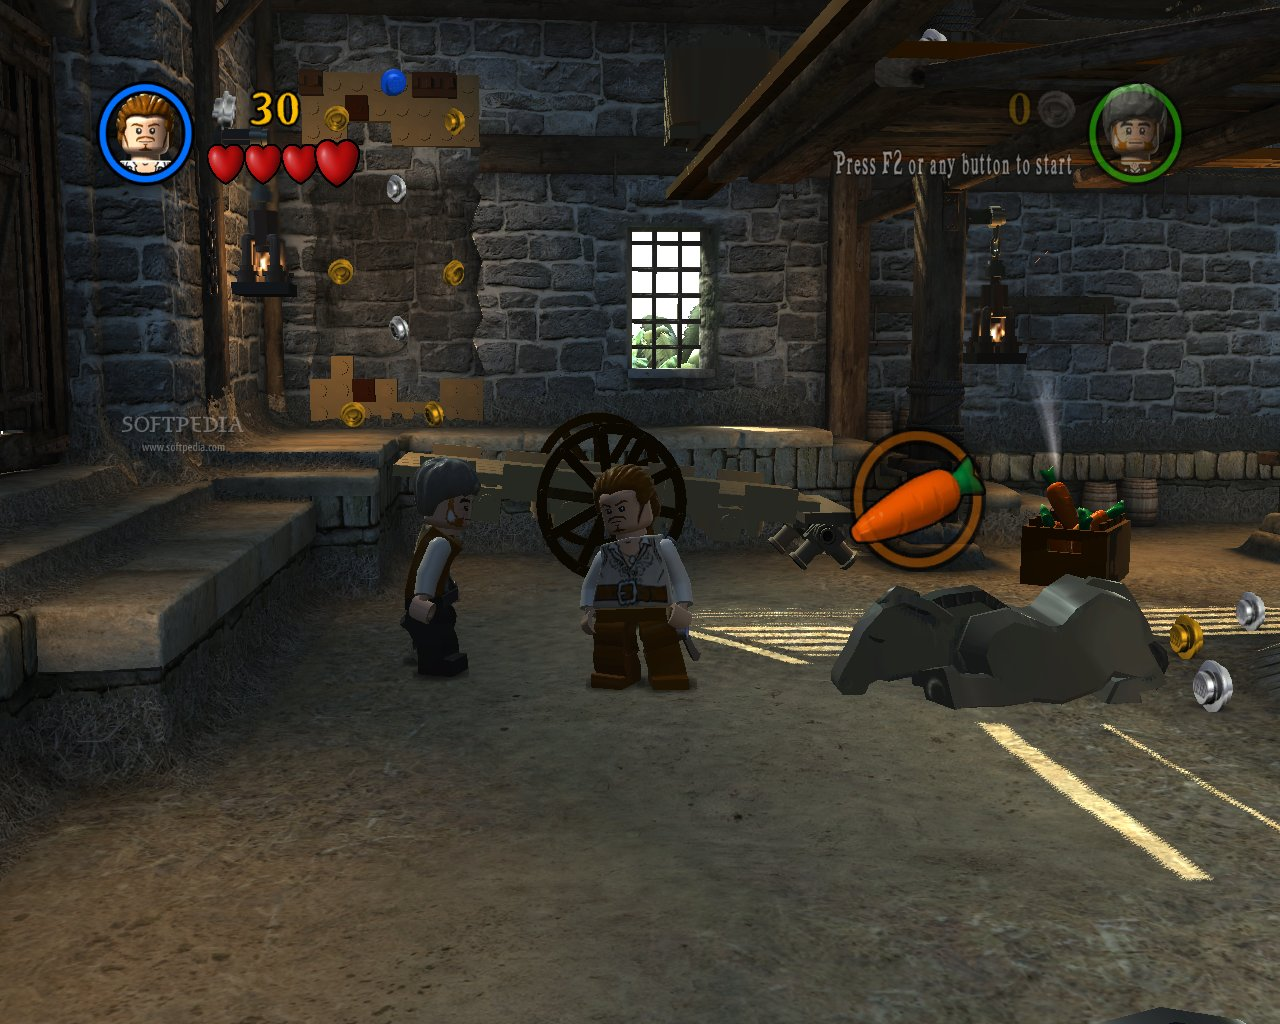 Lego Pirates Of The Caribbean The Video Game Demo Download